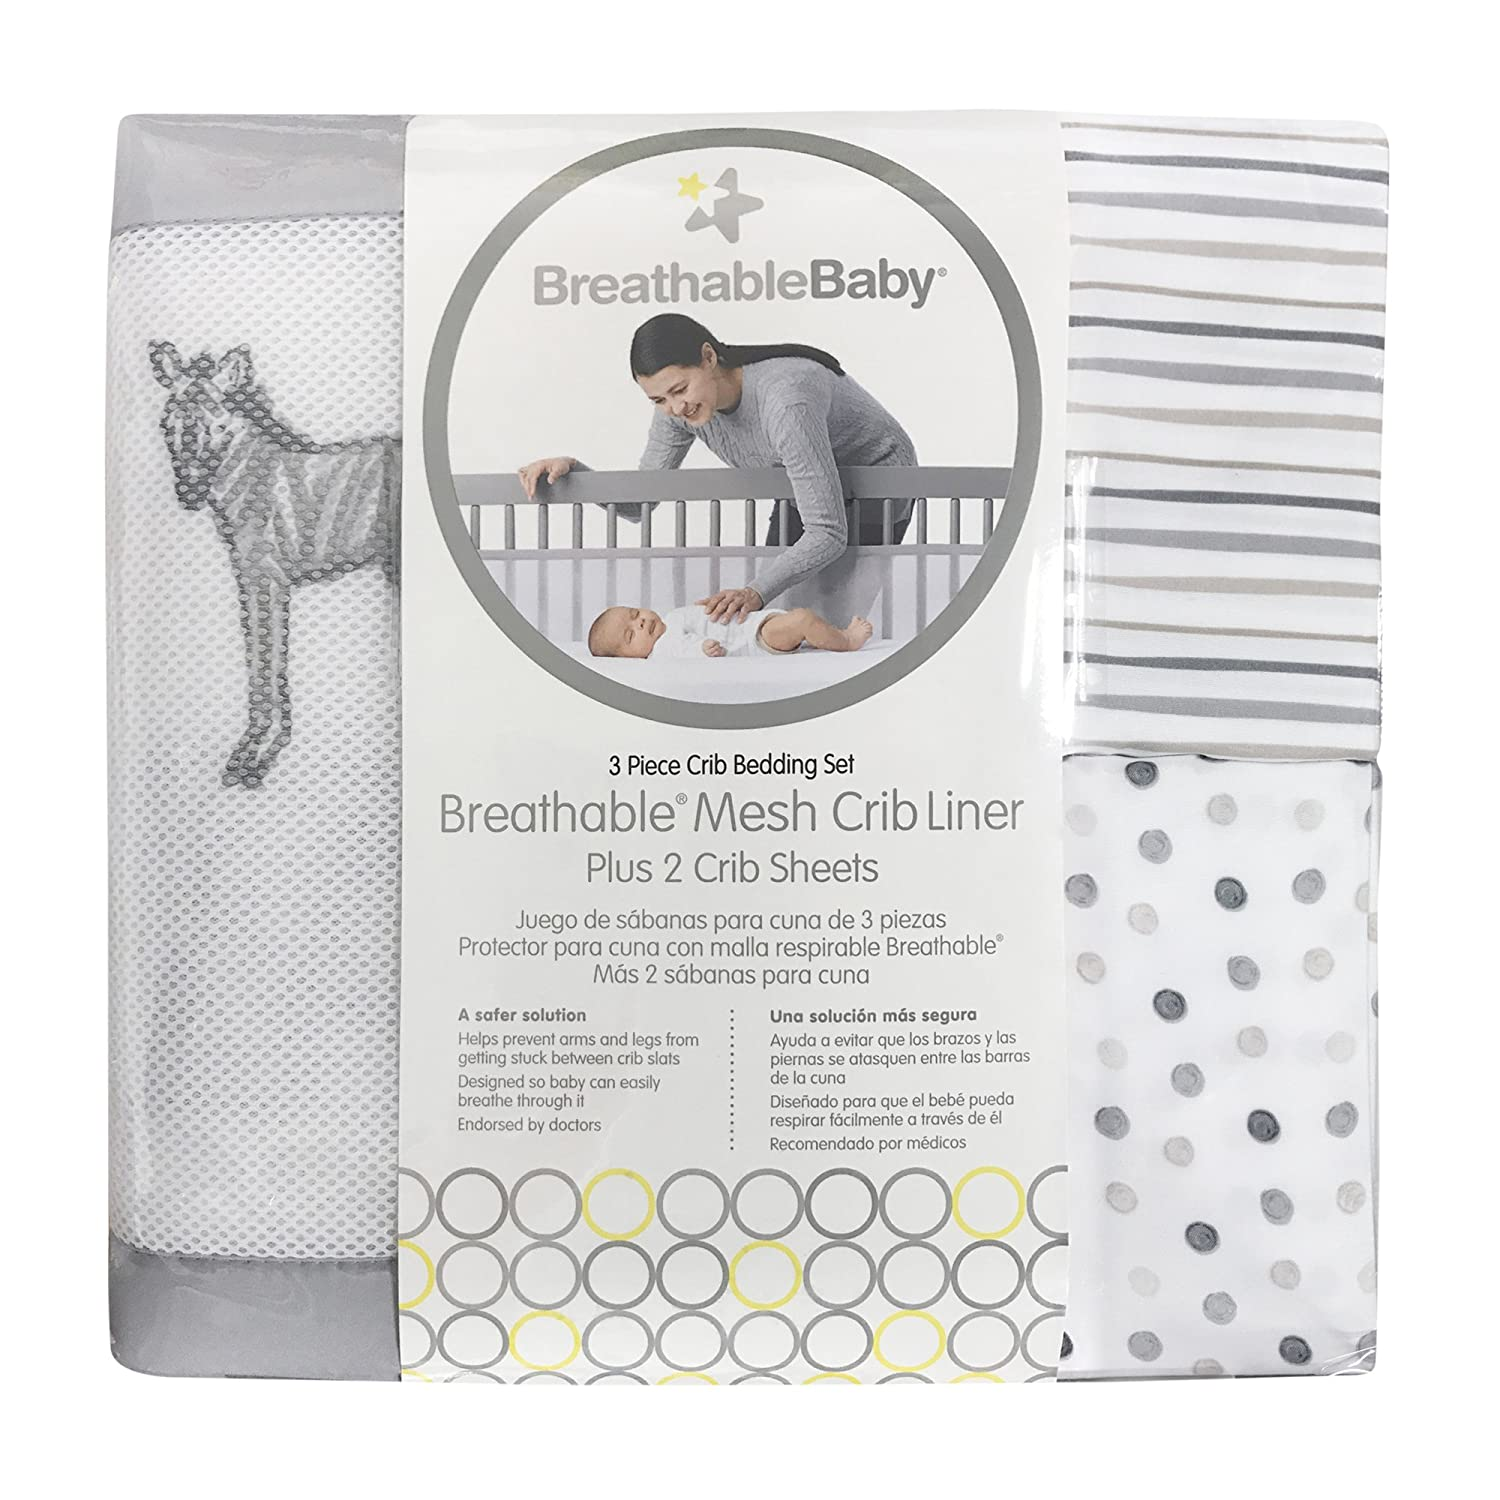 BreathableBaby | 3 Piece Crib Bedding Set Breathable Baby 90122